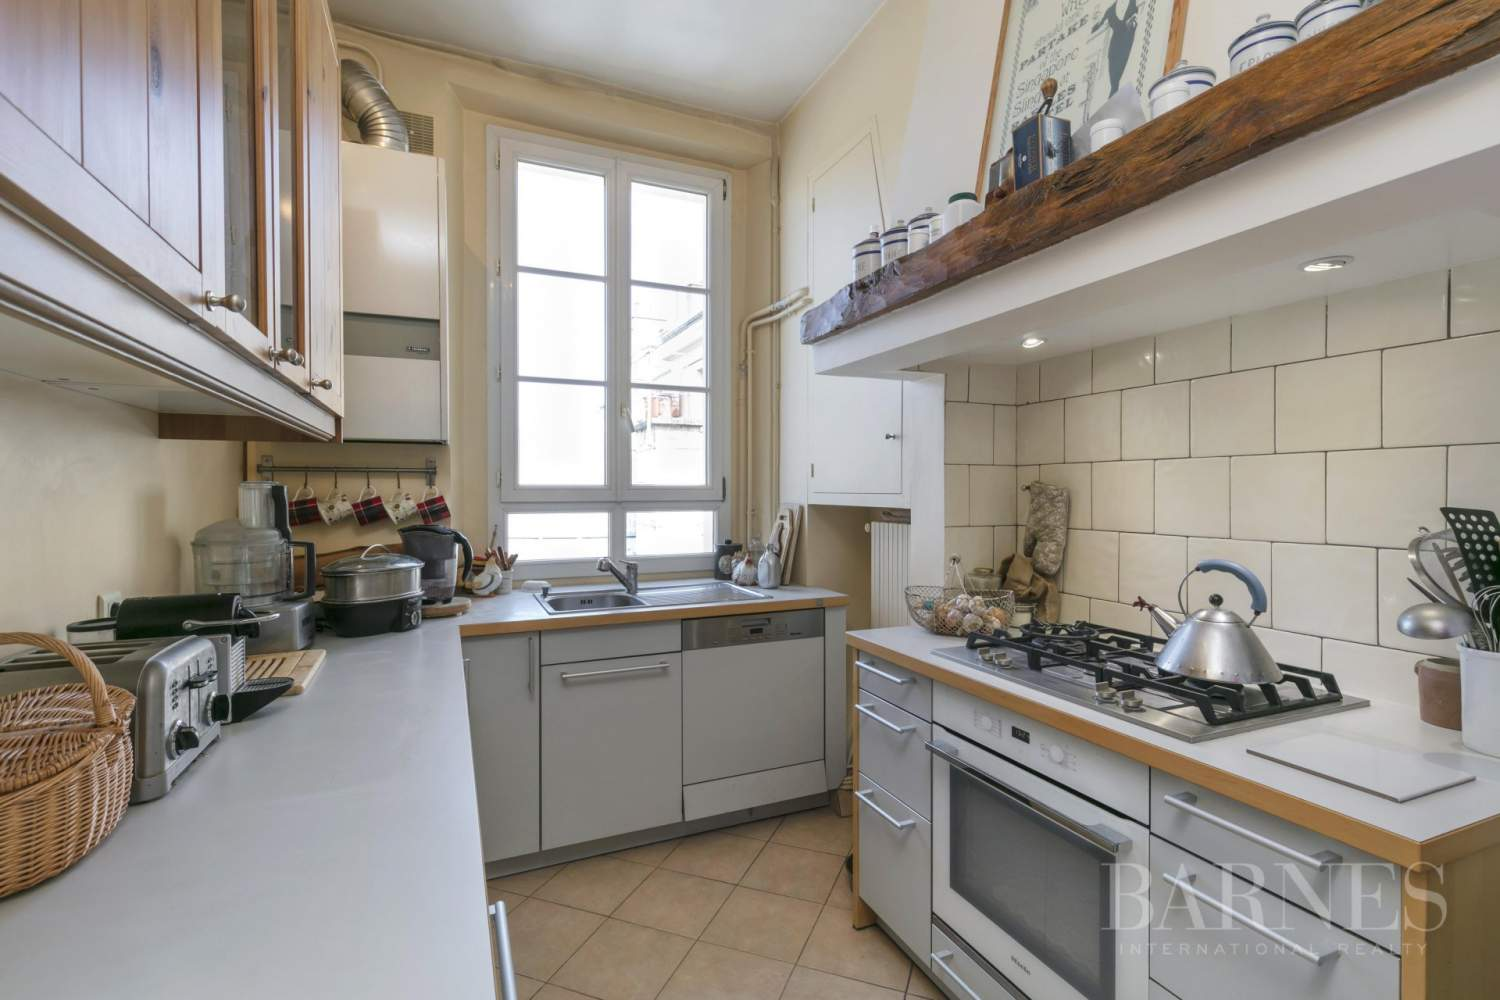 VERSAILLES - SAINT-LOUIS- APPARTEMENT 118m2 - 3 CHAMBRES - CAVE picture 5